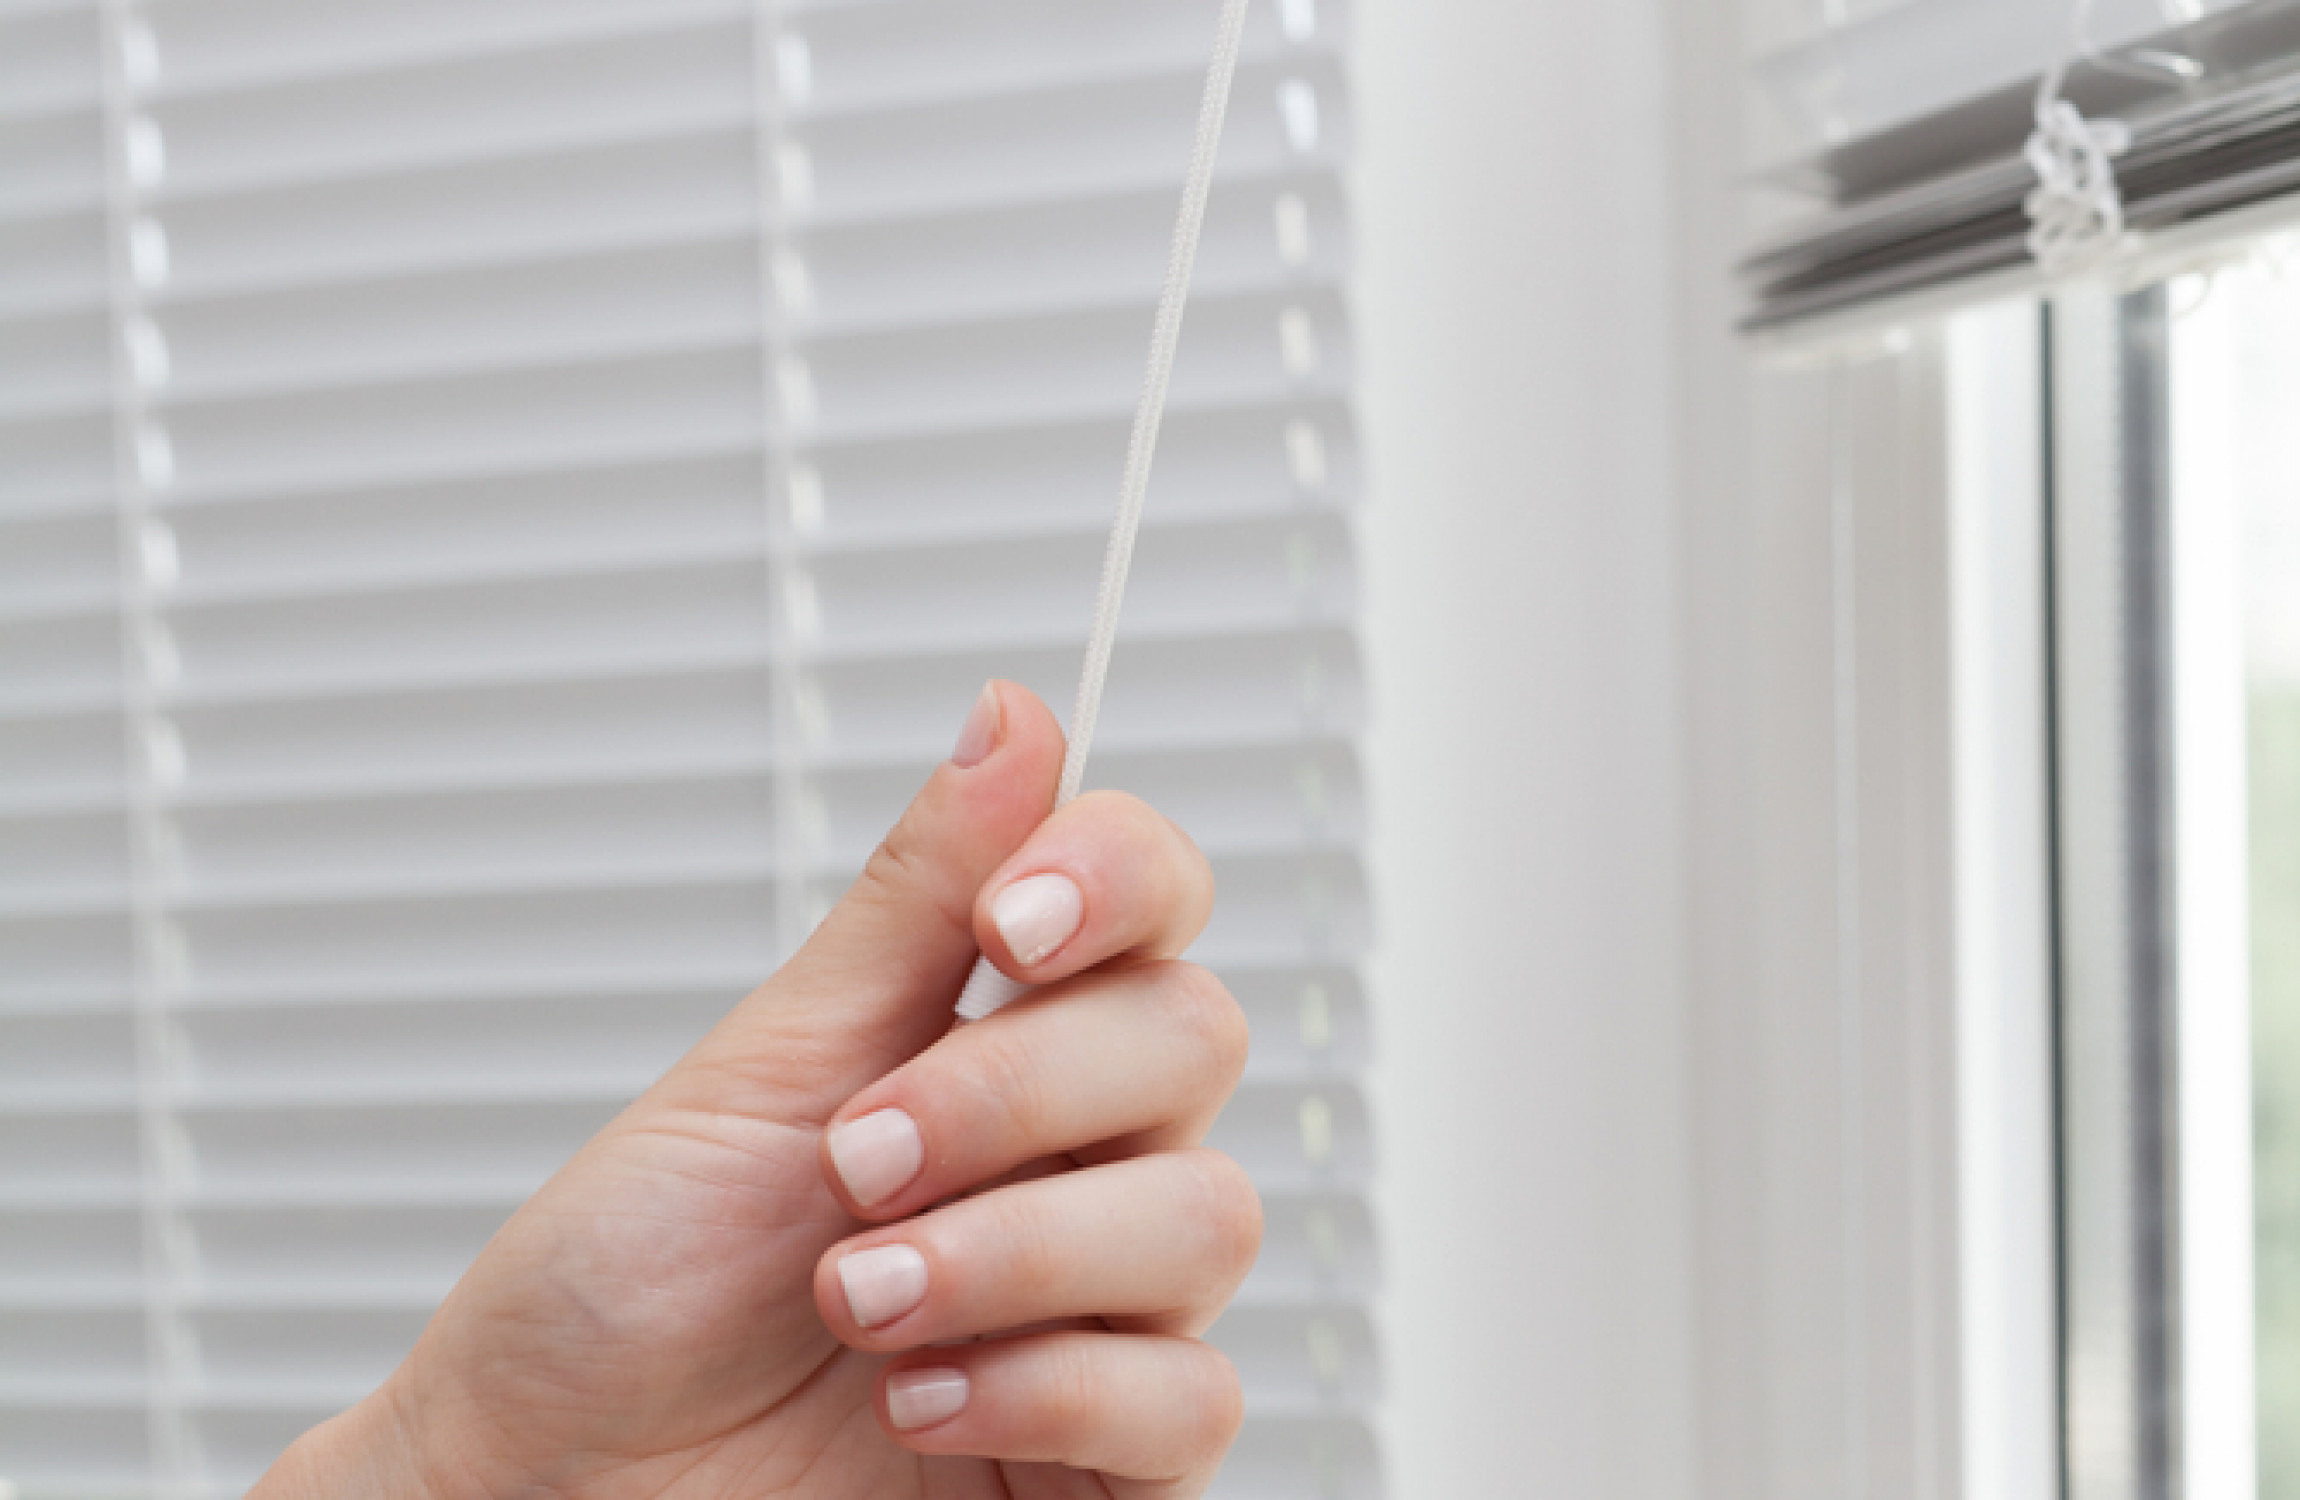 Poll Should Window Blinds With Accessible Cords Be Banned To